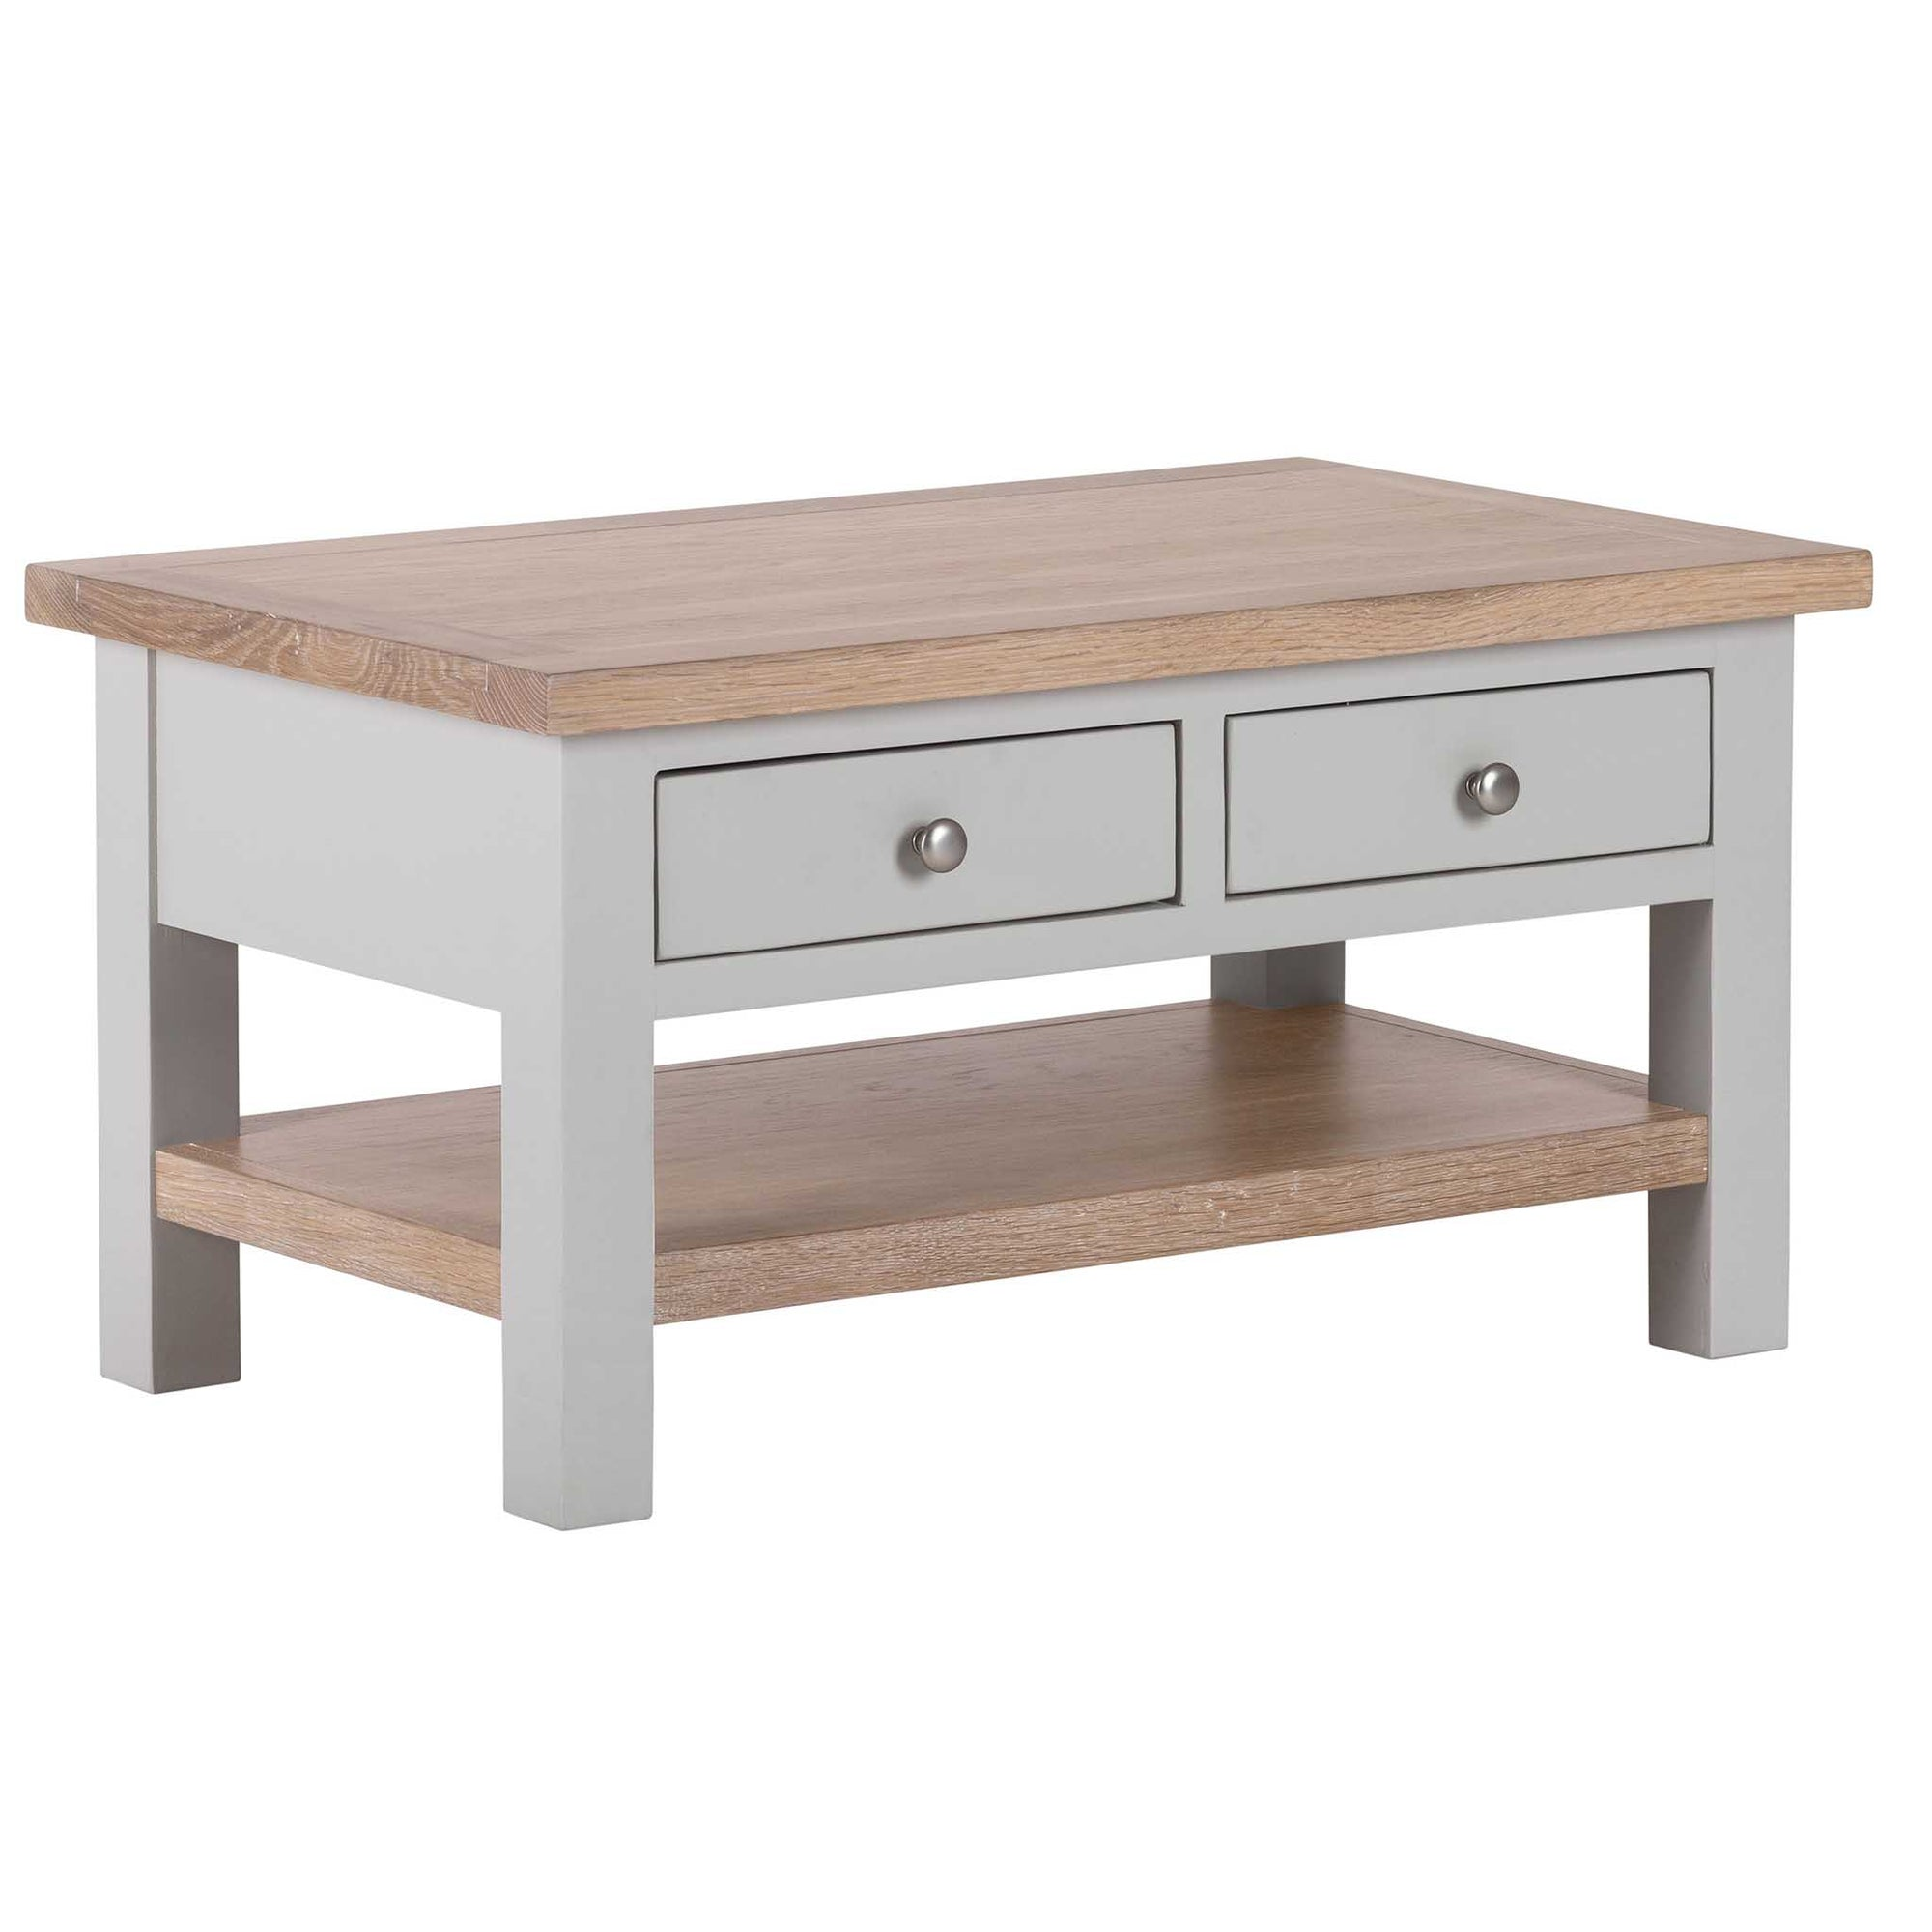 Charlestown Grey Coffee Table with 2 Drawers from Roseland Furniture